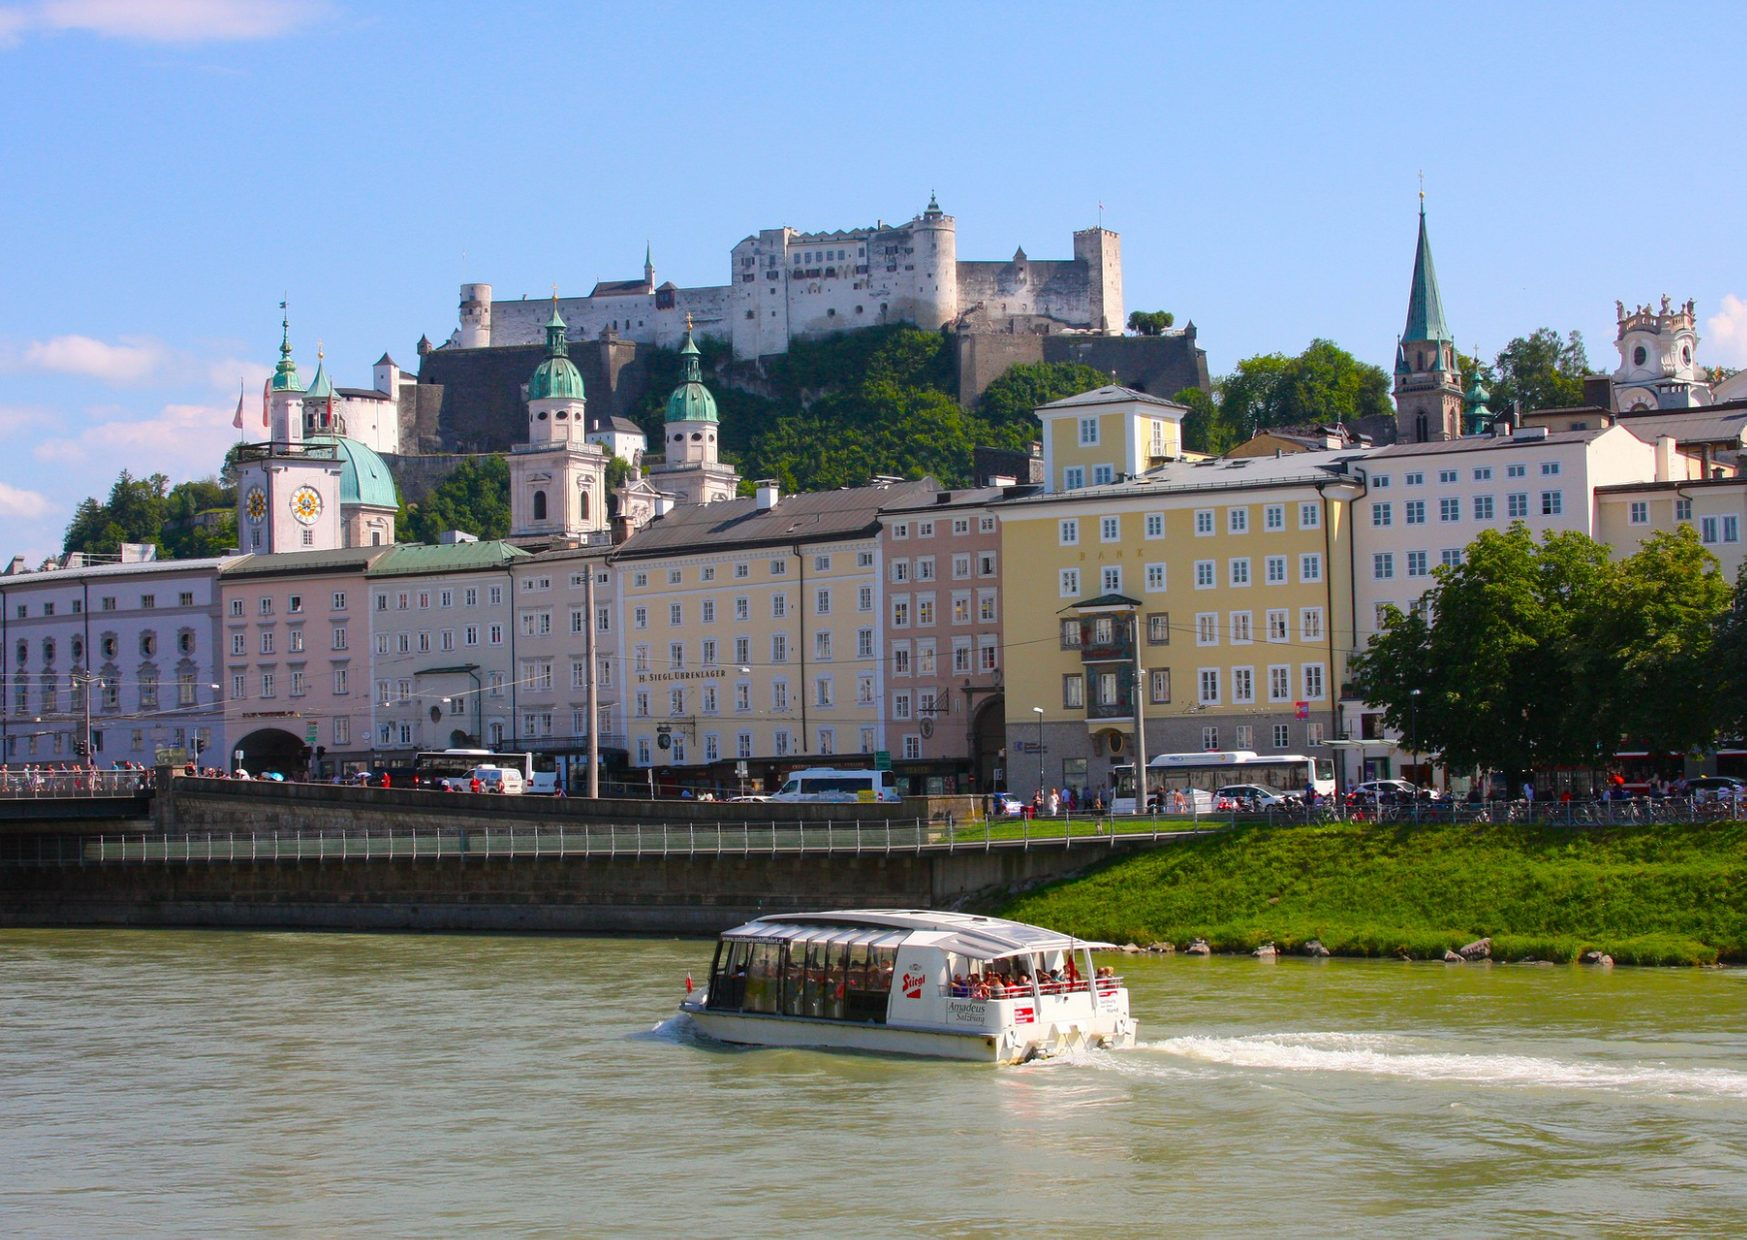 Amadeus Cruise on the River Salzach - photo by Voices of Travel